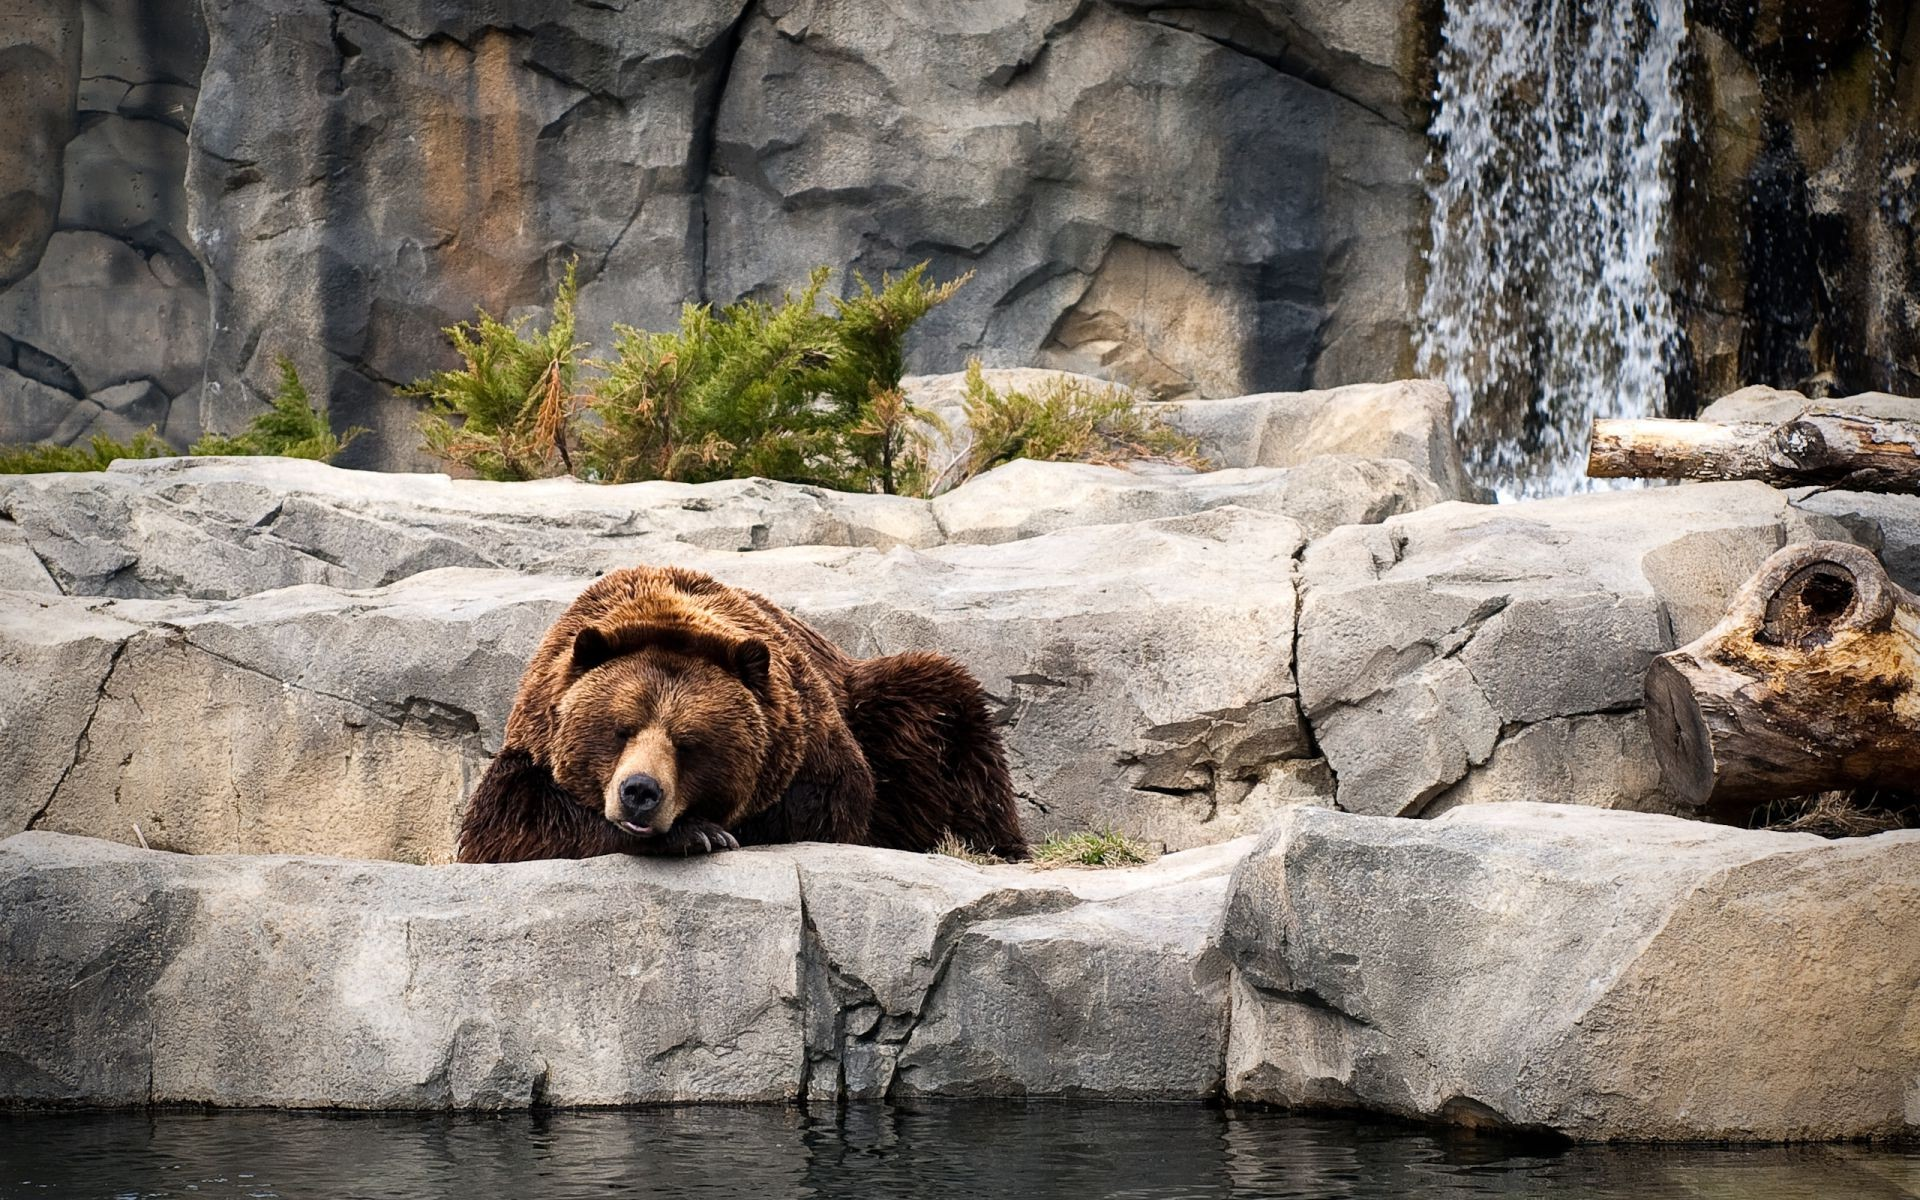 bears water mammal nature wildlife rock outdoors wild